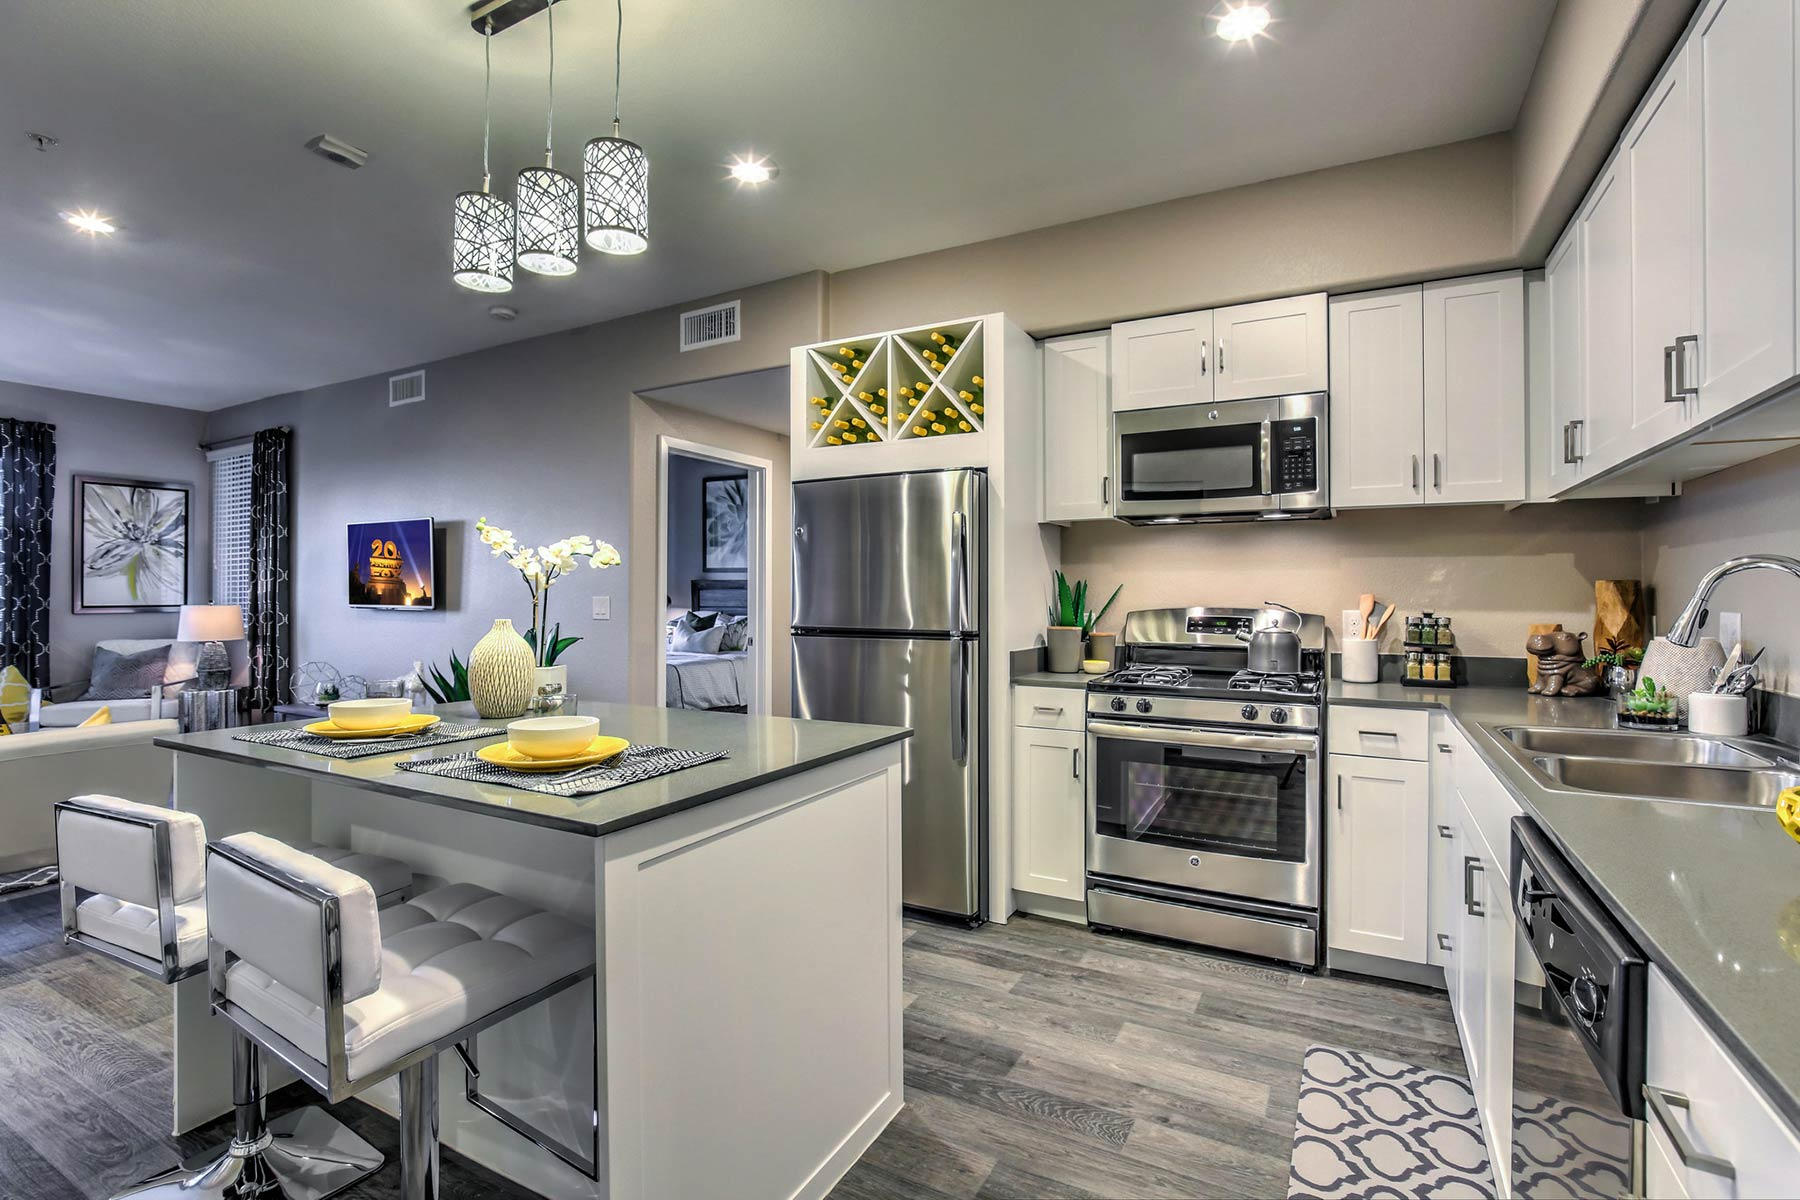 An open-concept kitchen with wood-style flooring, quartz countertops, large island, pendant lighting, white cabinetry, and stainless steel appliances. The kitchen overlooks the living room.